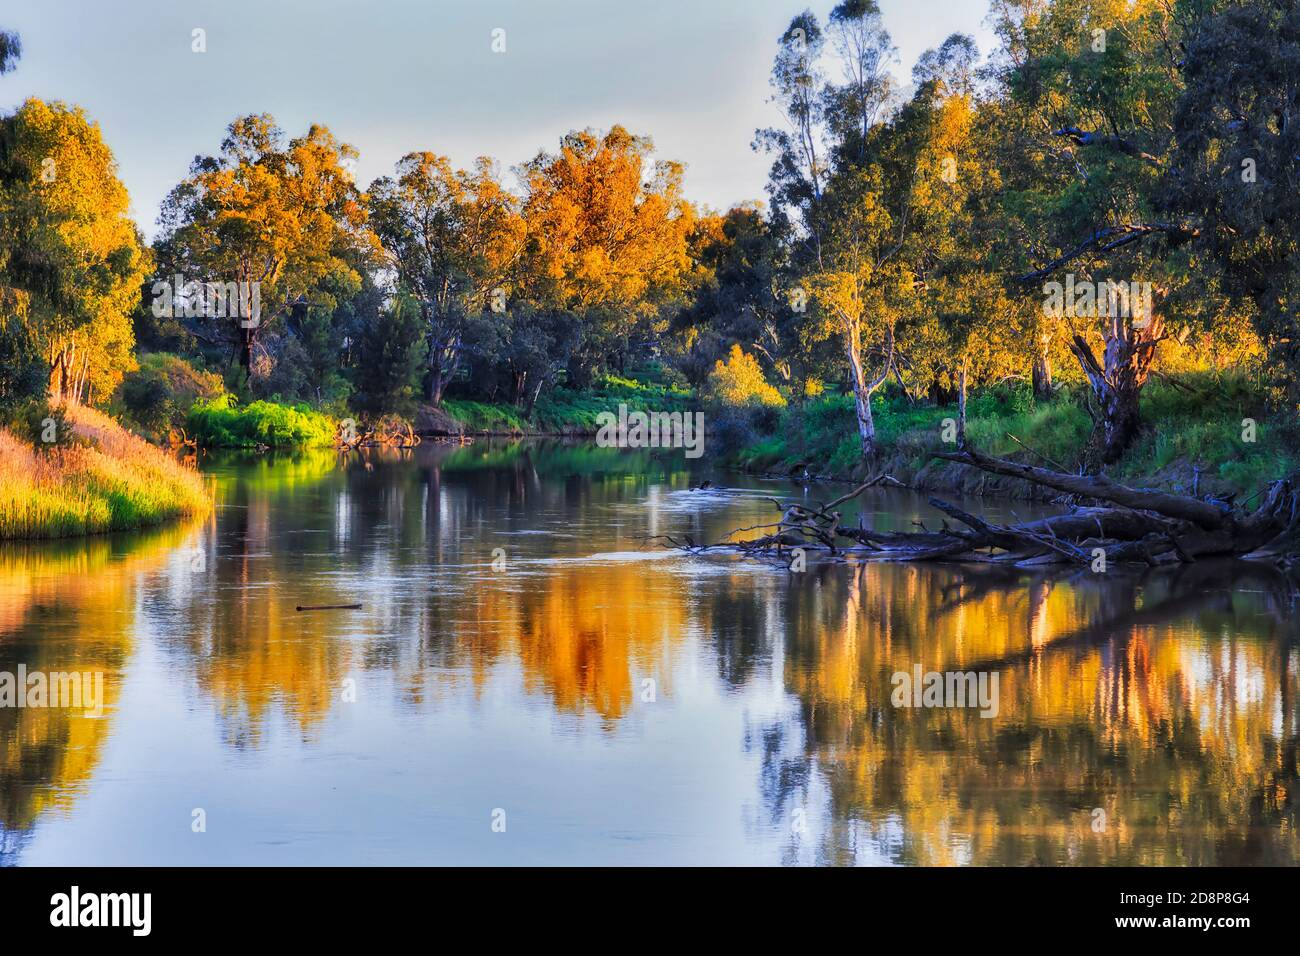 Macquarie river flowing in Dubbo city of Great Western plains in Australia - scenic landscape at sunset. Stock Photo